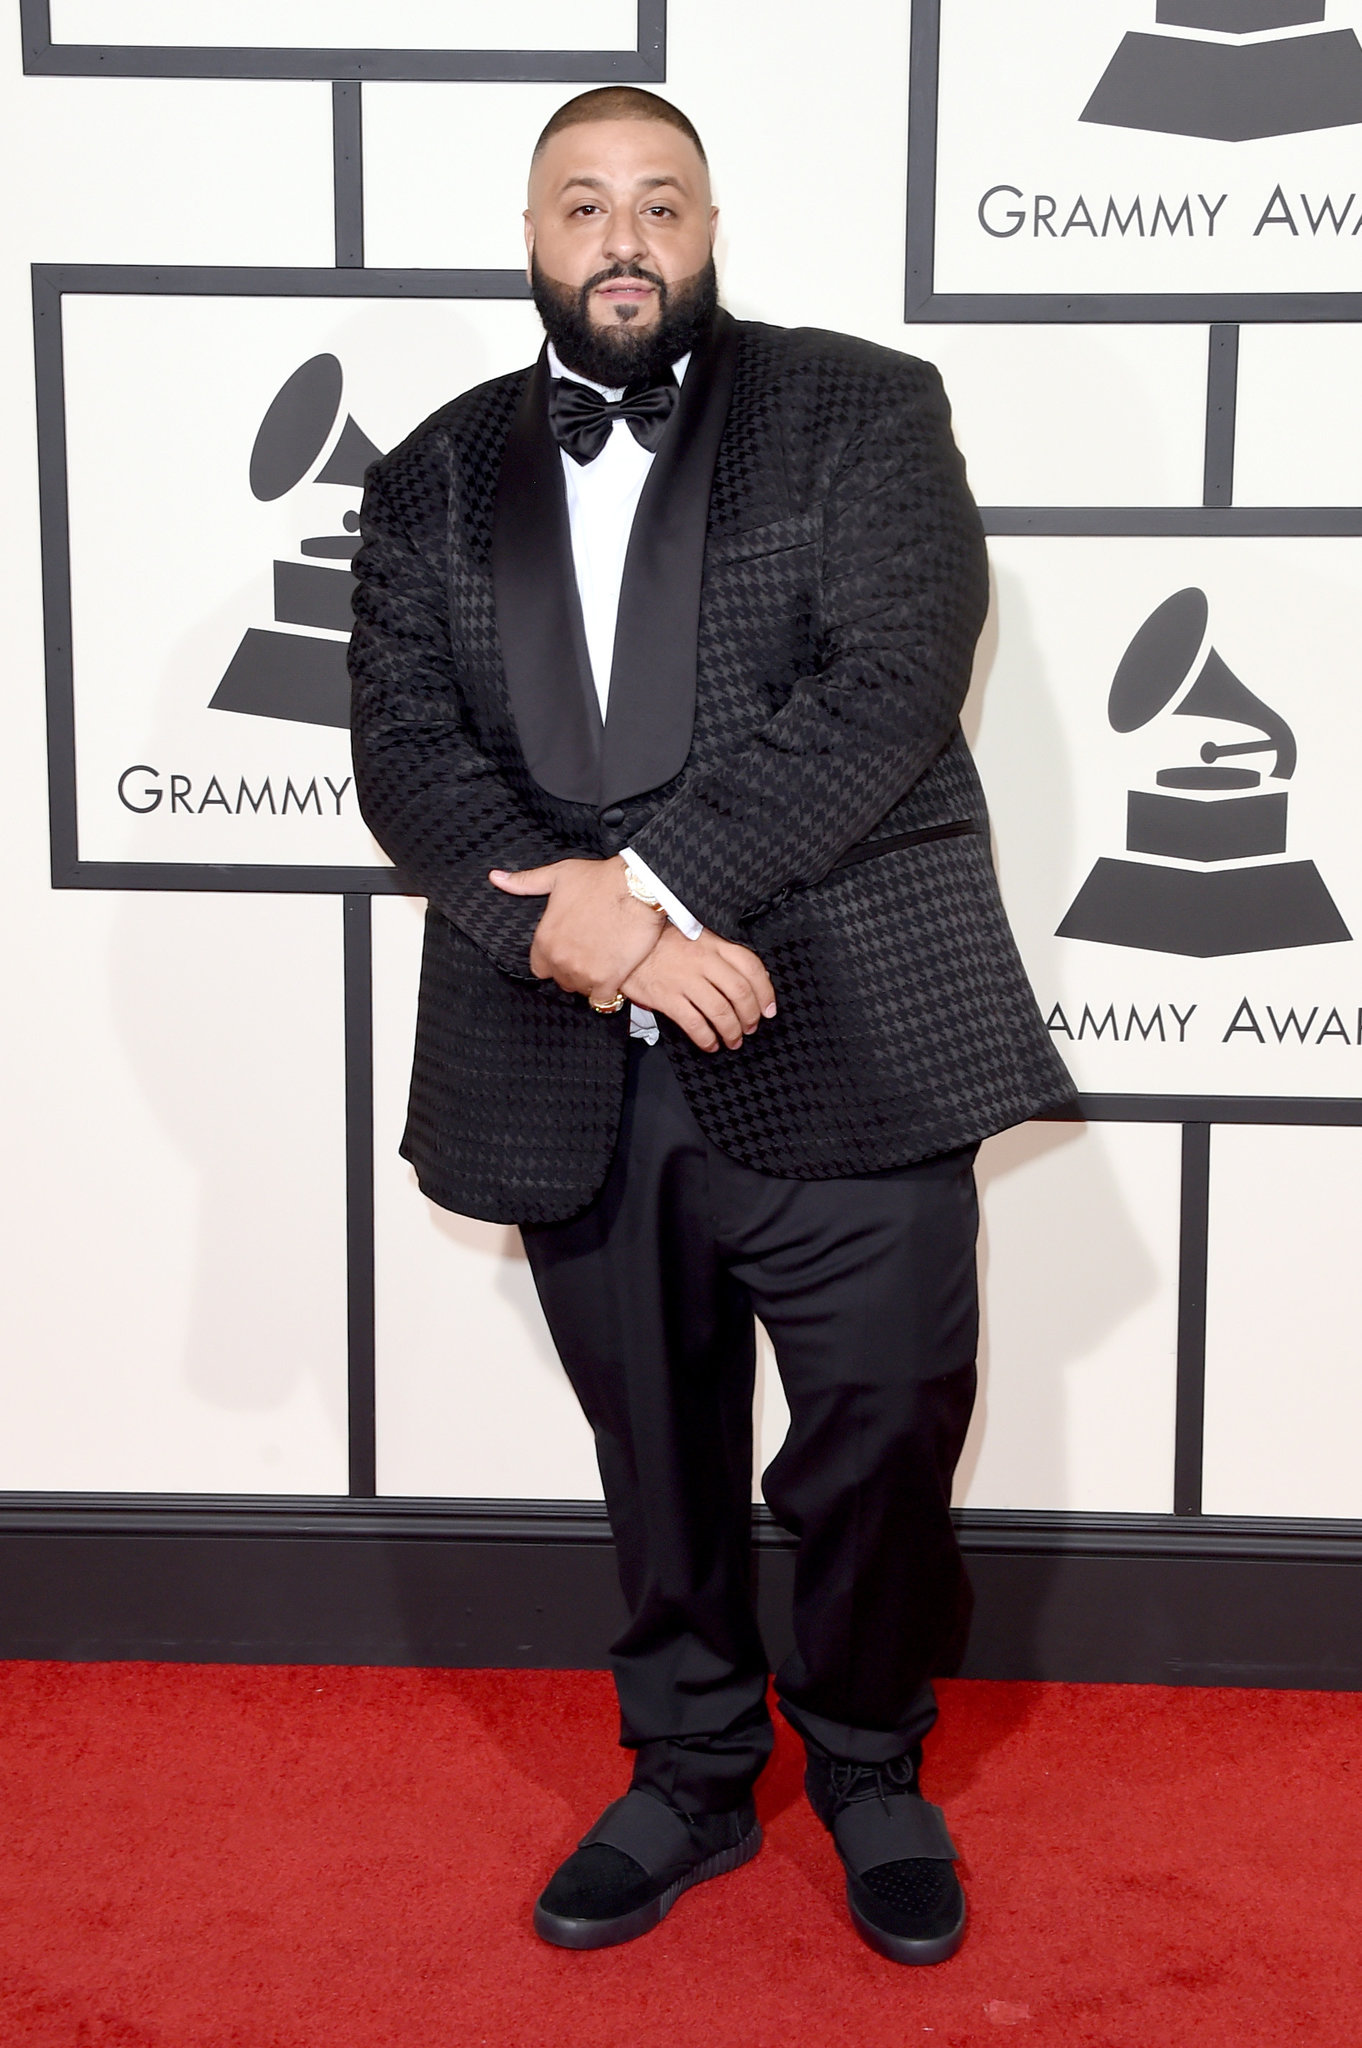 grammys-red-carpet-37048-dj-khaled-superJumbo